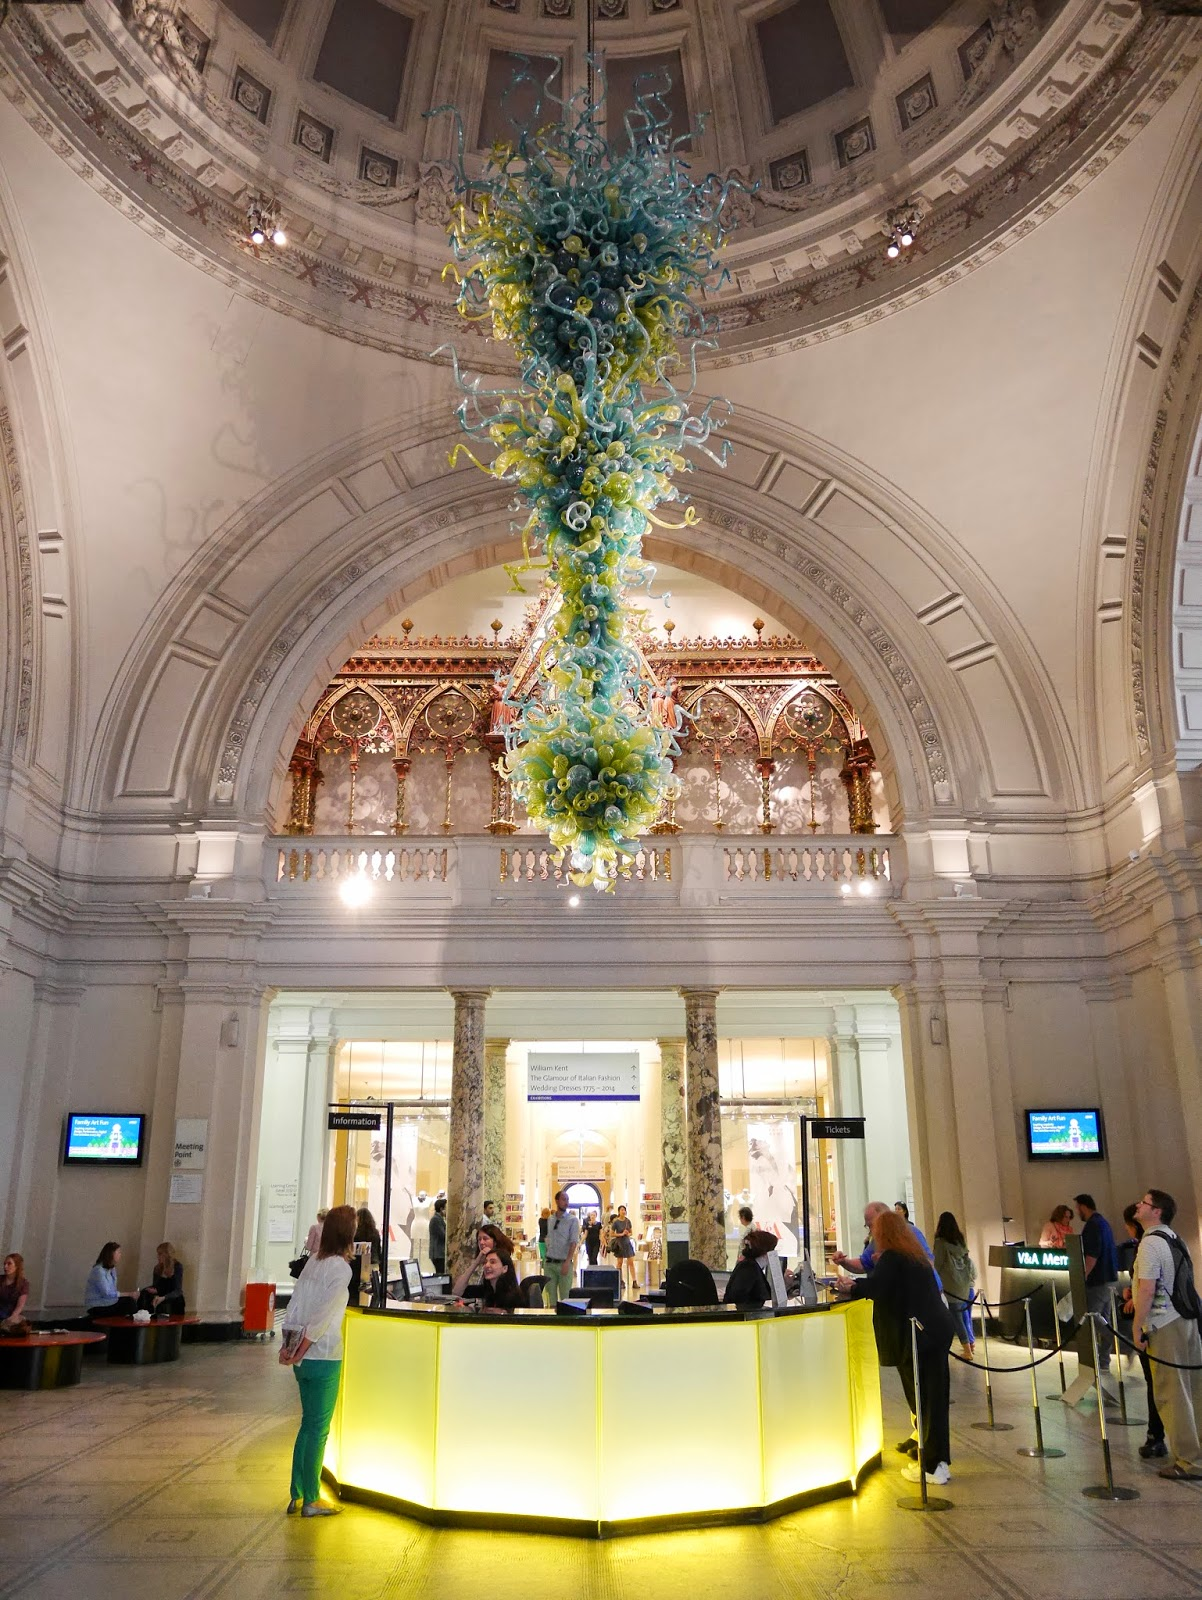 Foyer of the Victoria and Albert Museum